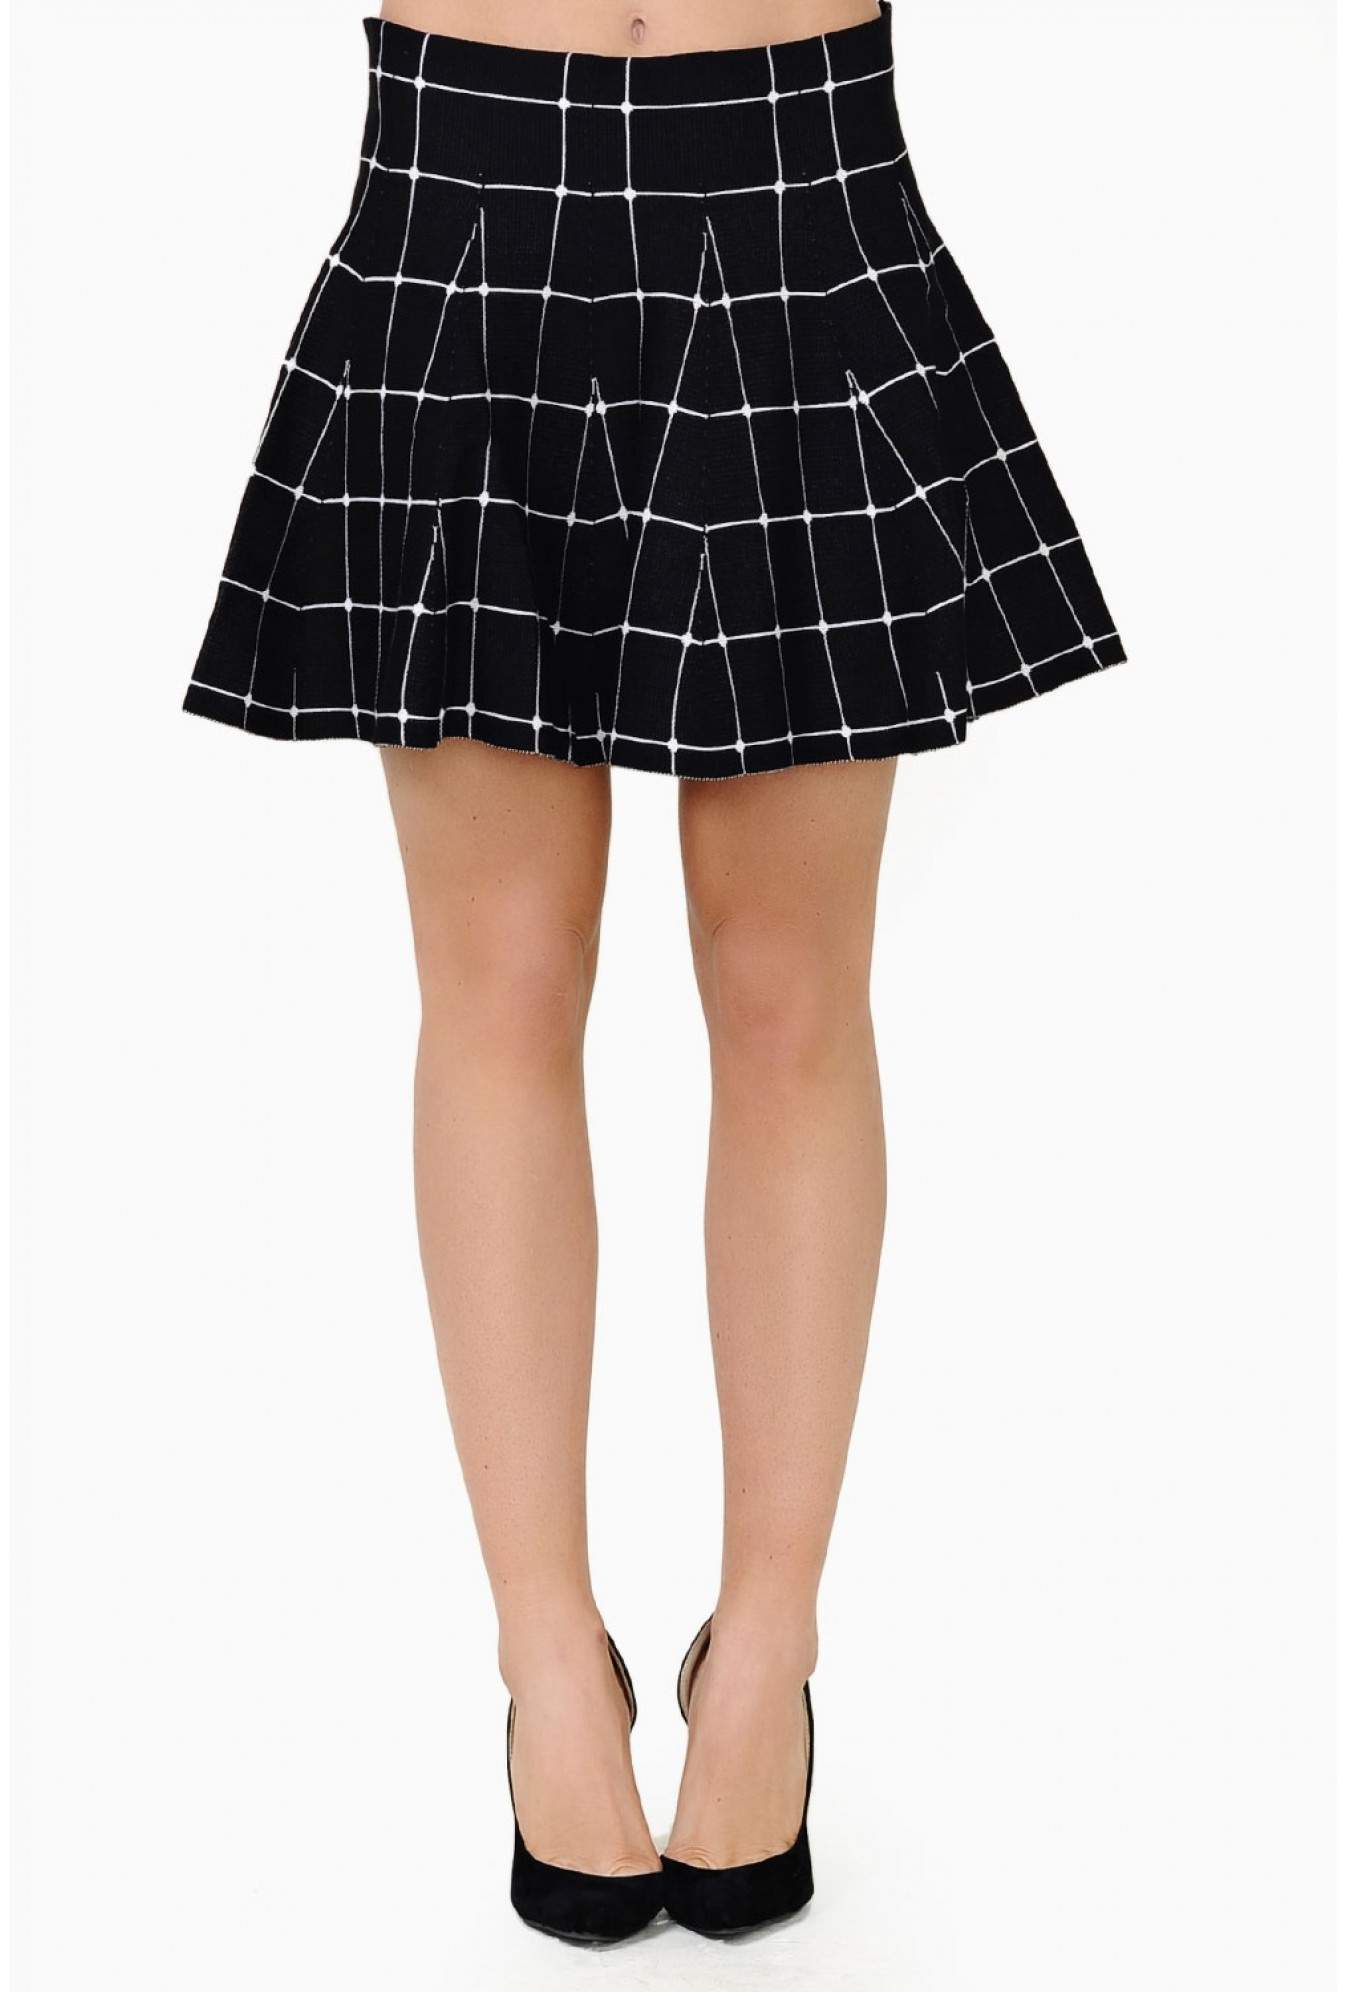 3ff826a7c Angel Paris Rose Check Knitted Skater Skirt | iCLOTHING